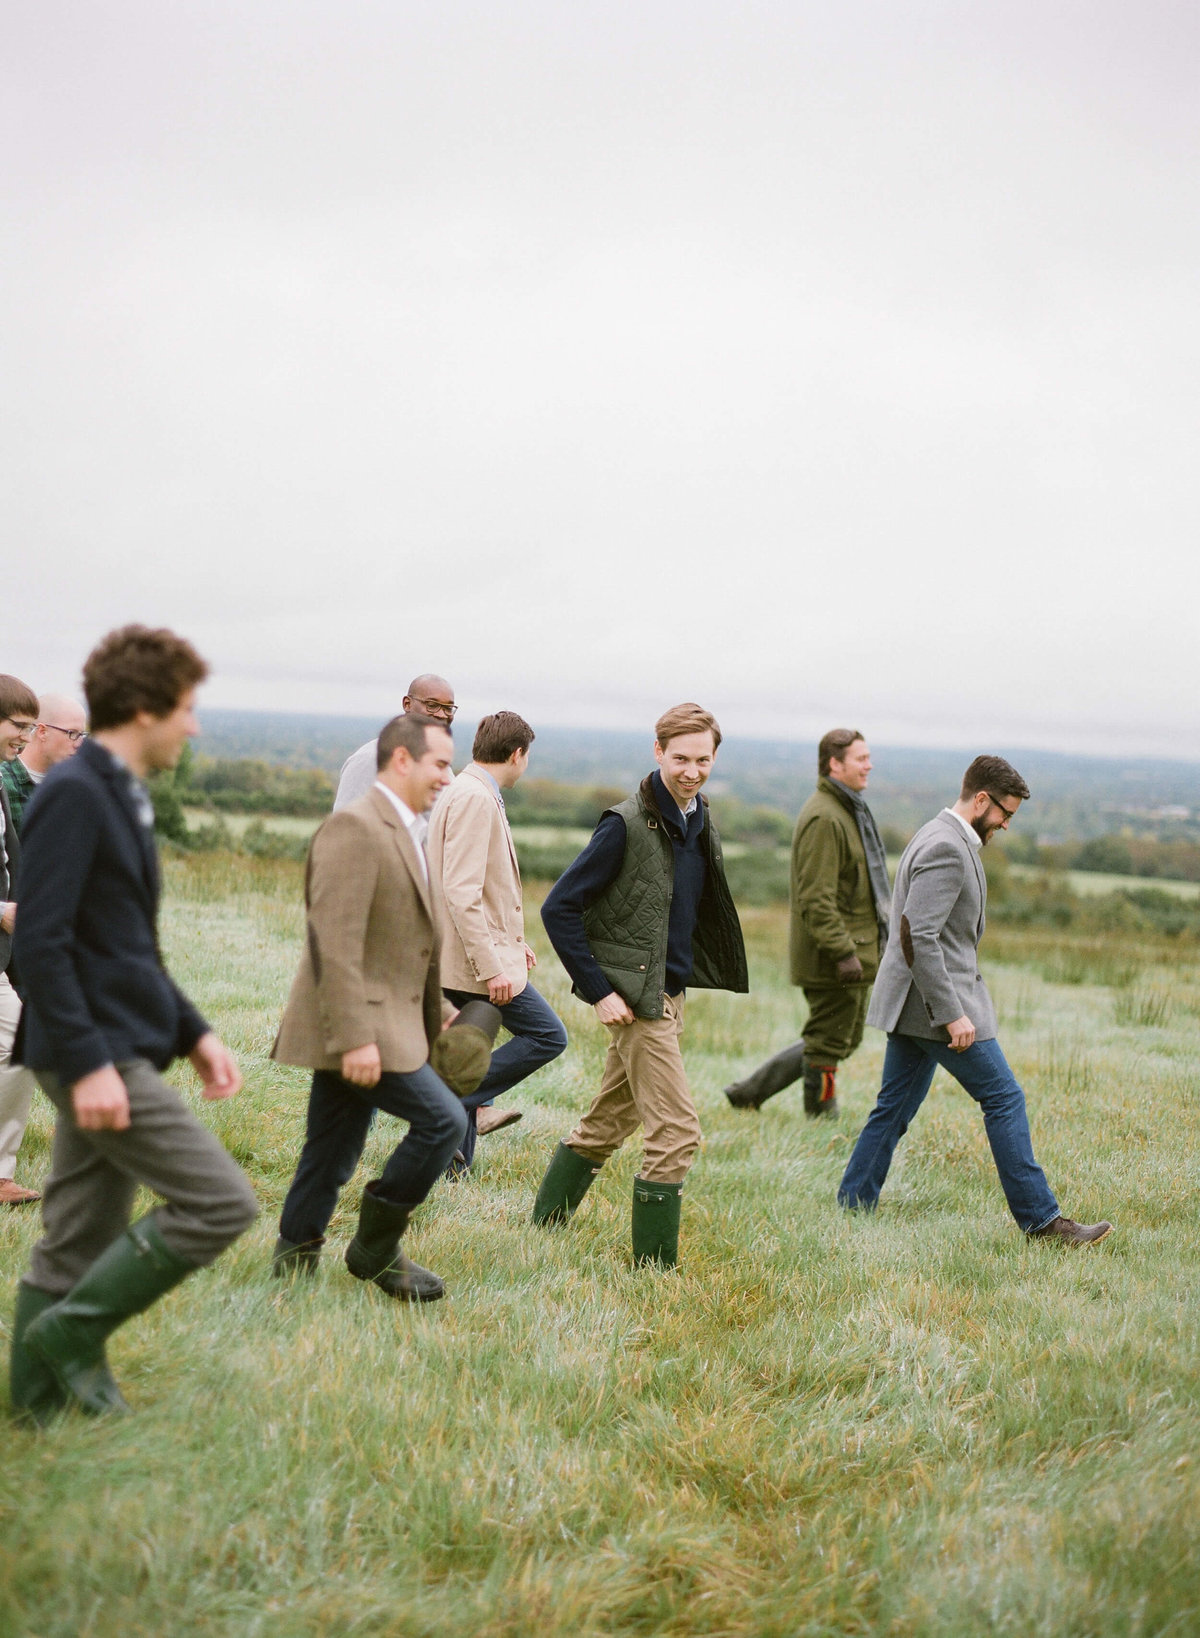 20-KTMerry-destination-weddings-groomsmen-walking-Ireland